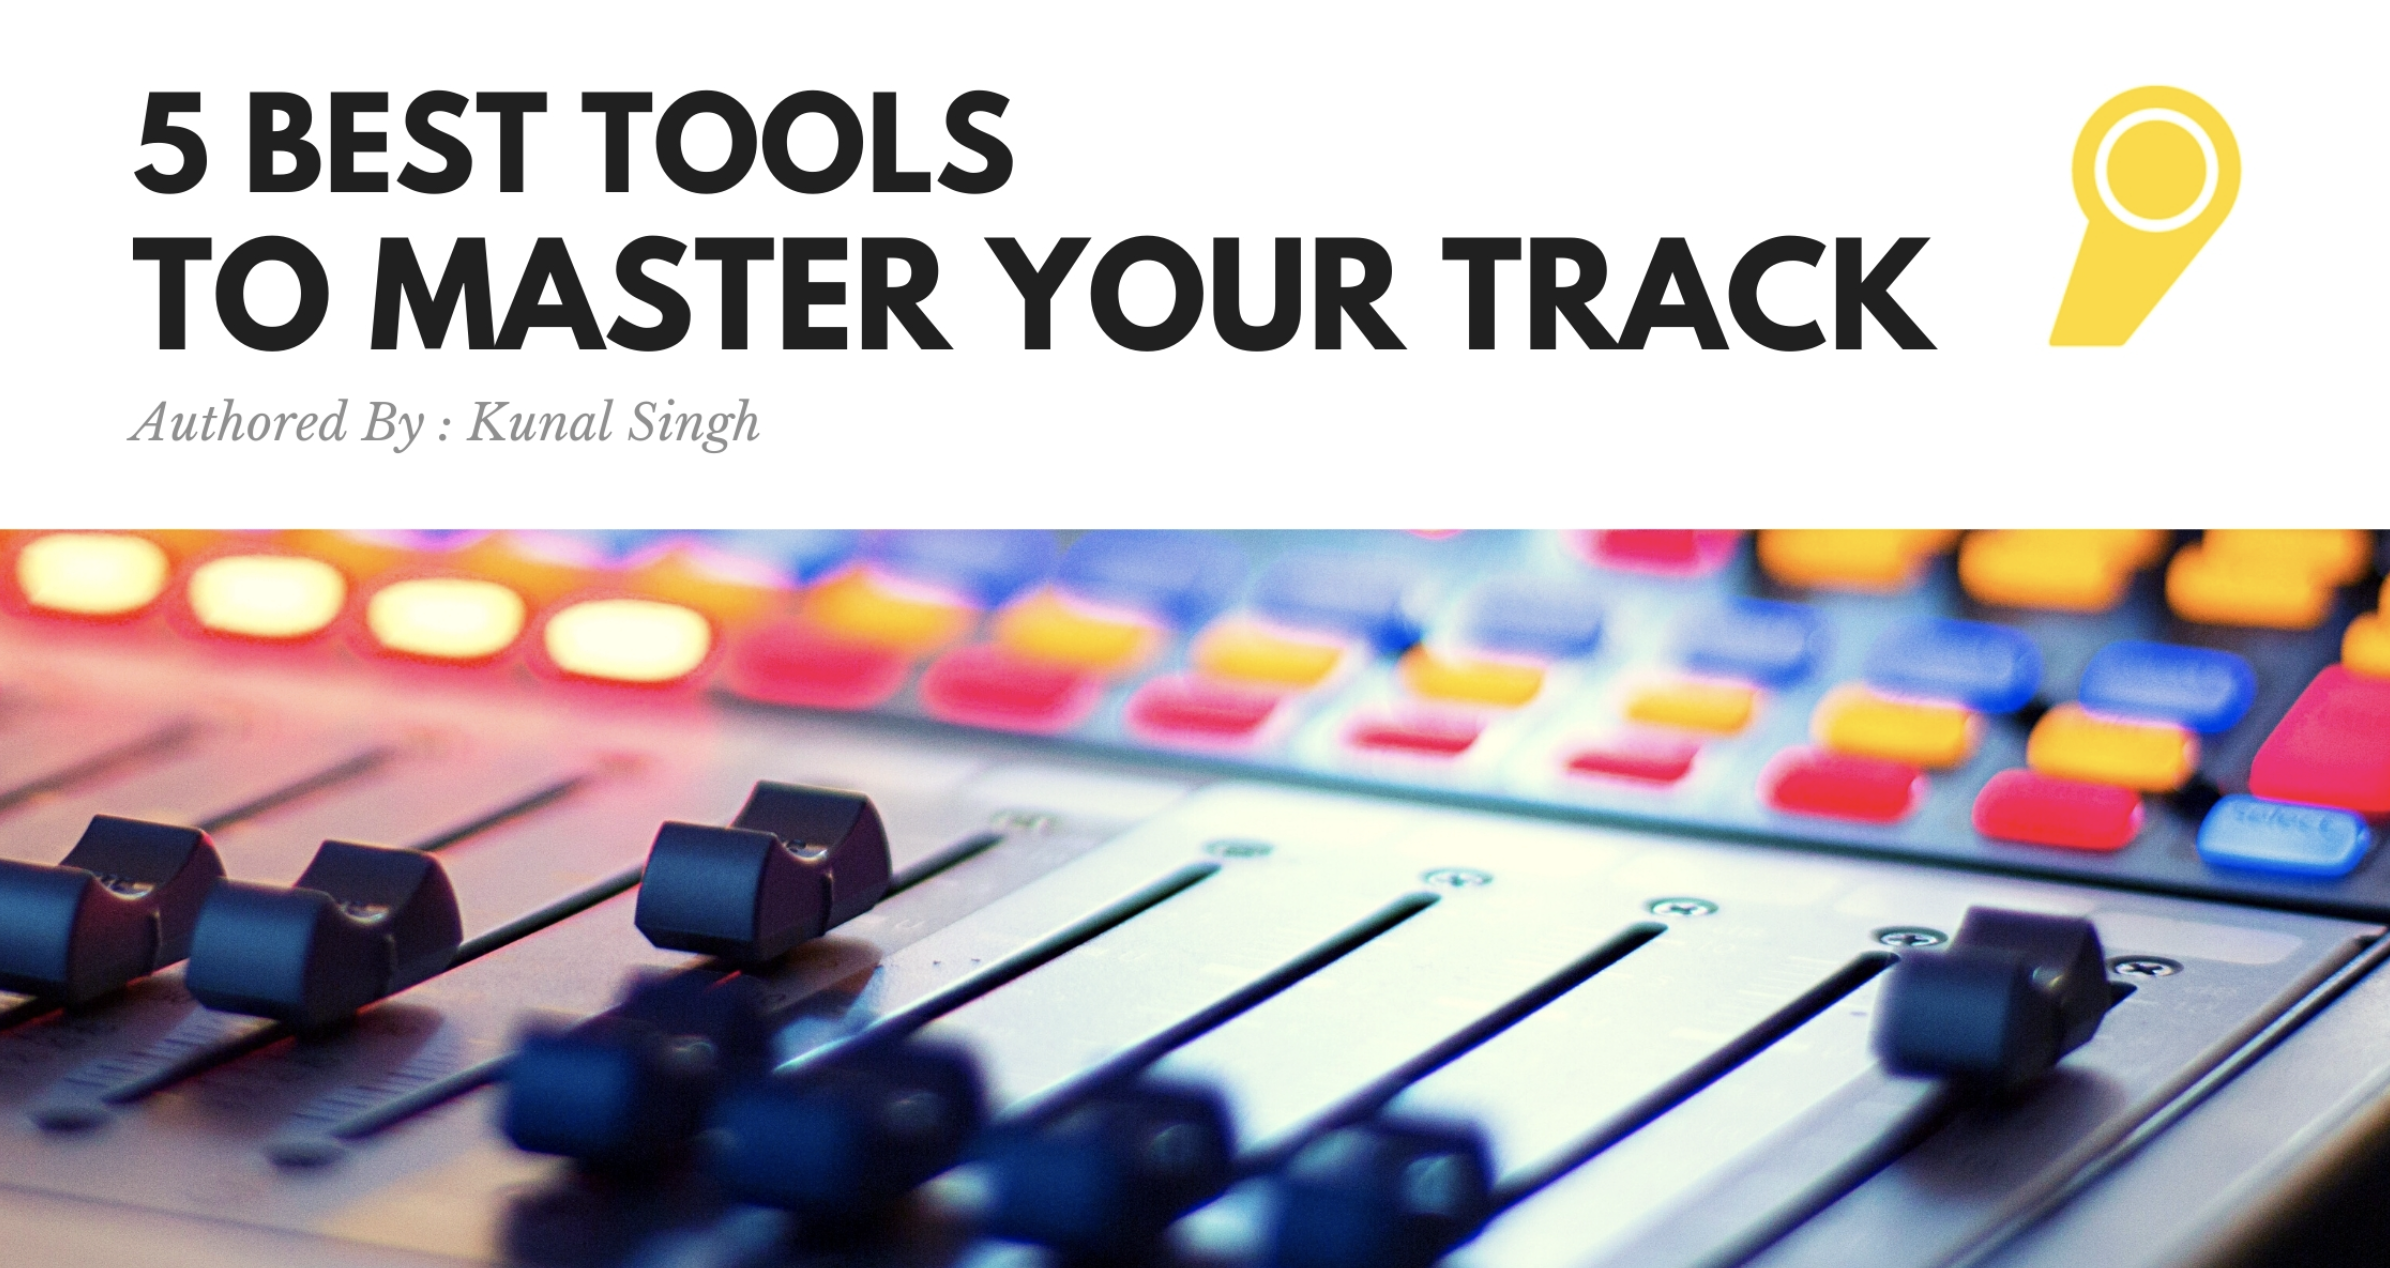 5 Best Tools To Master Your Track